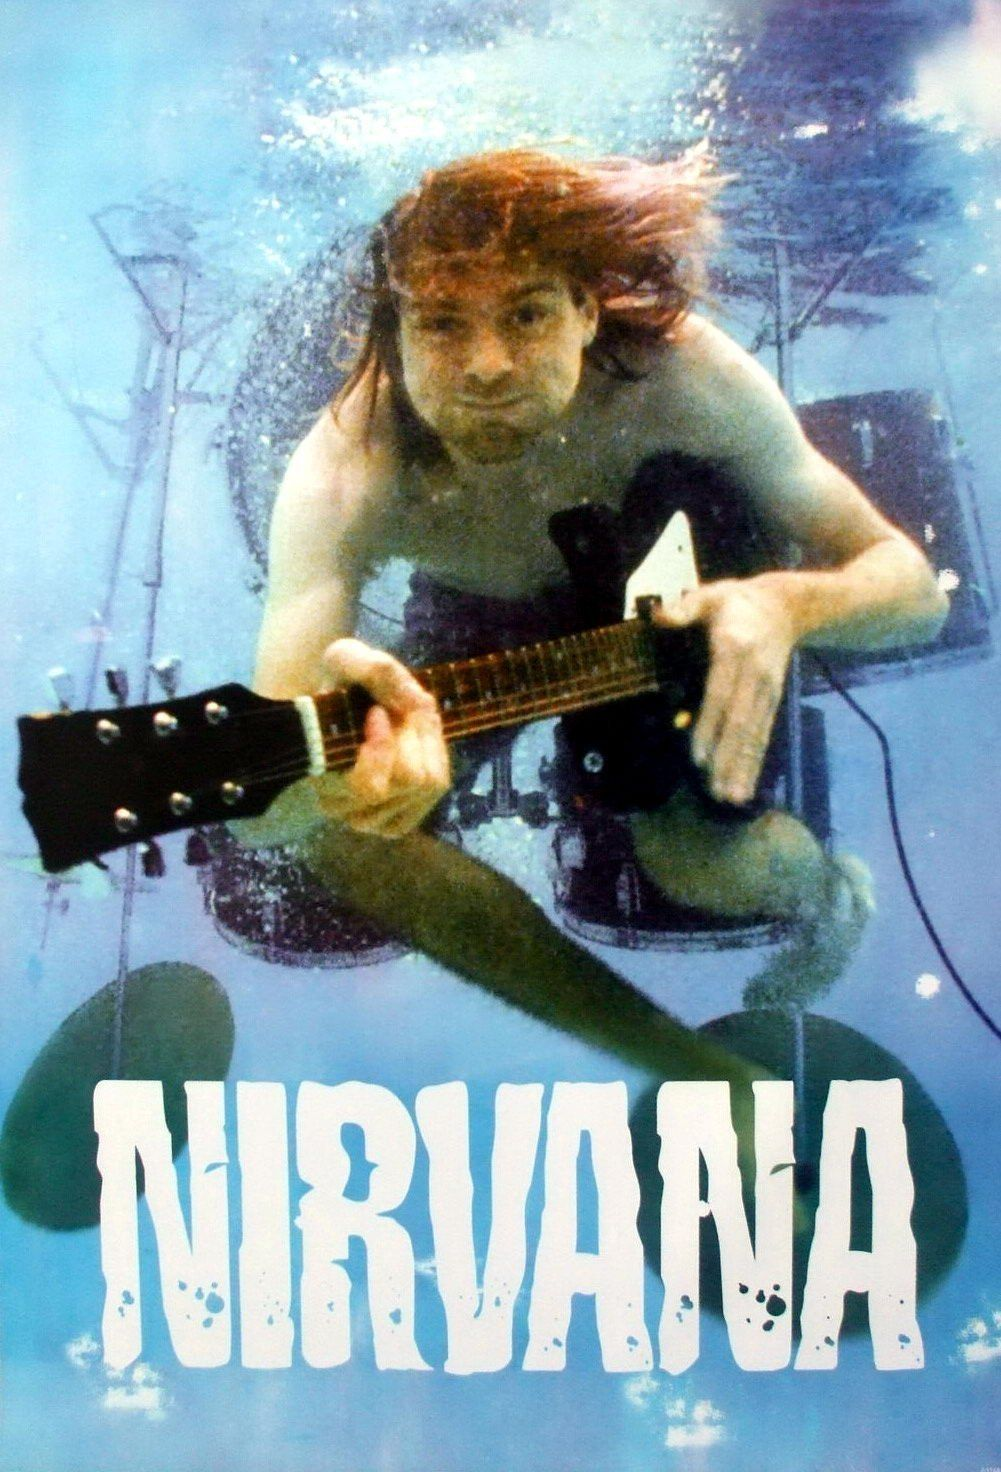 Musica Nirvana And: Nirvana Grunge Rock Band Seattle Sound Music Poster Size